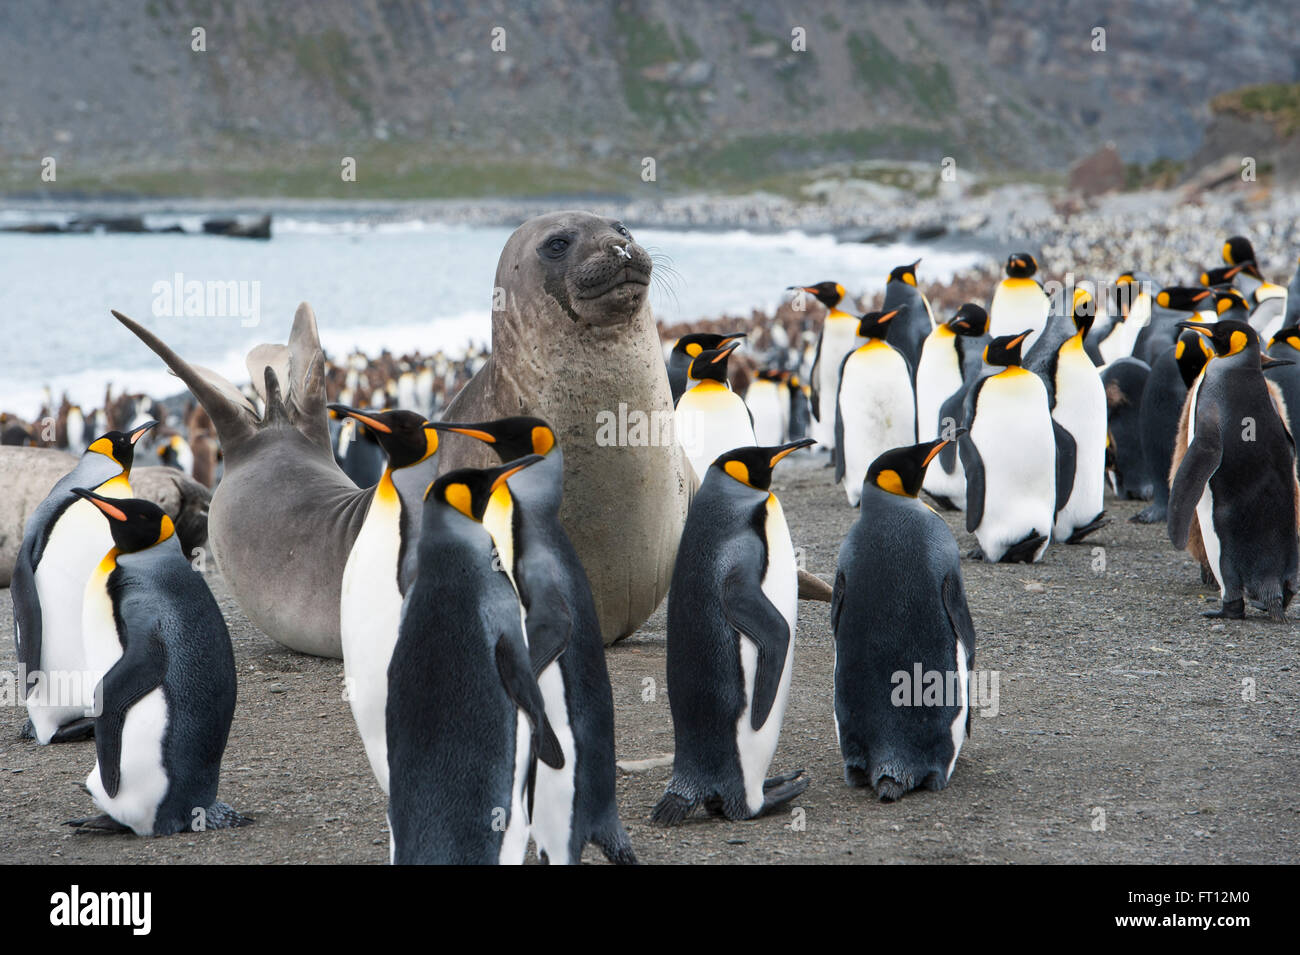 A sea lion amidst a large group of Emperor Penguins Aptenodytes forsteri on beach, Gold Harbour, South Georgia Island, - Stock Image